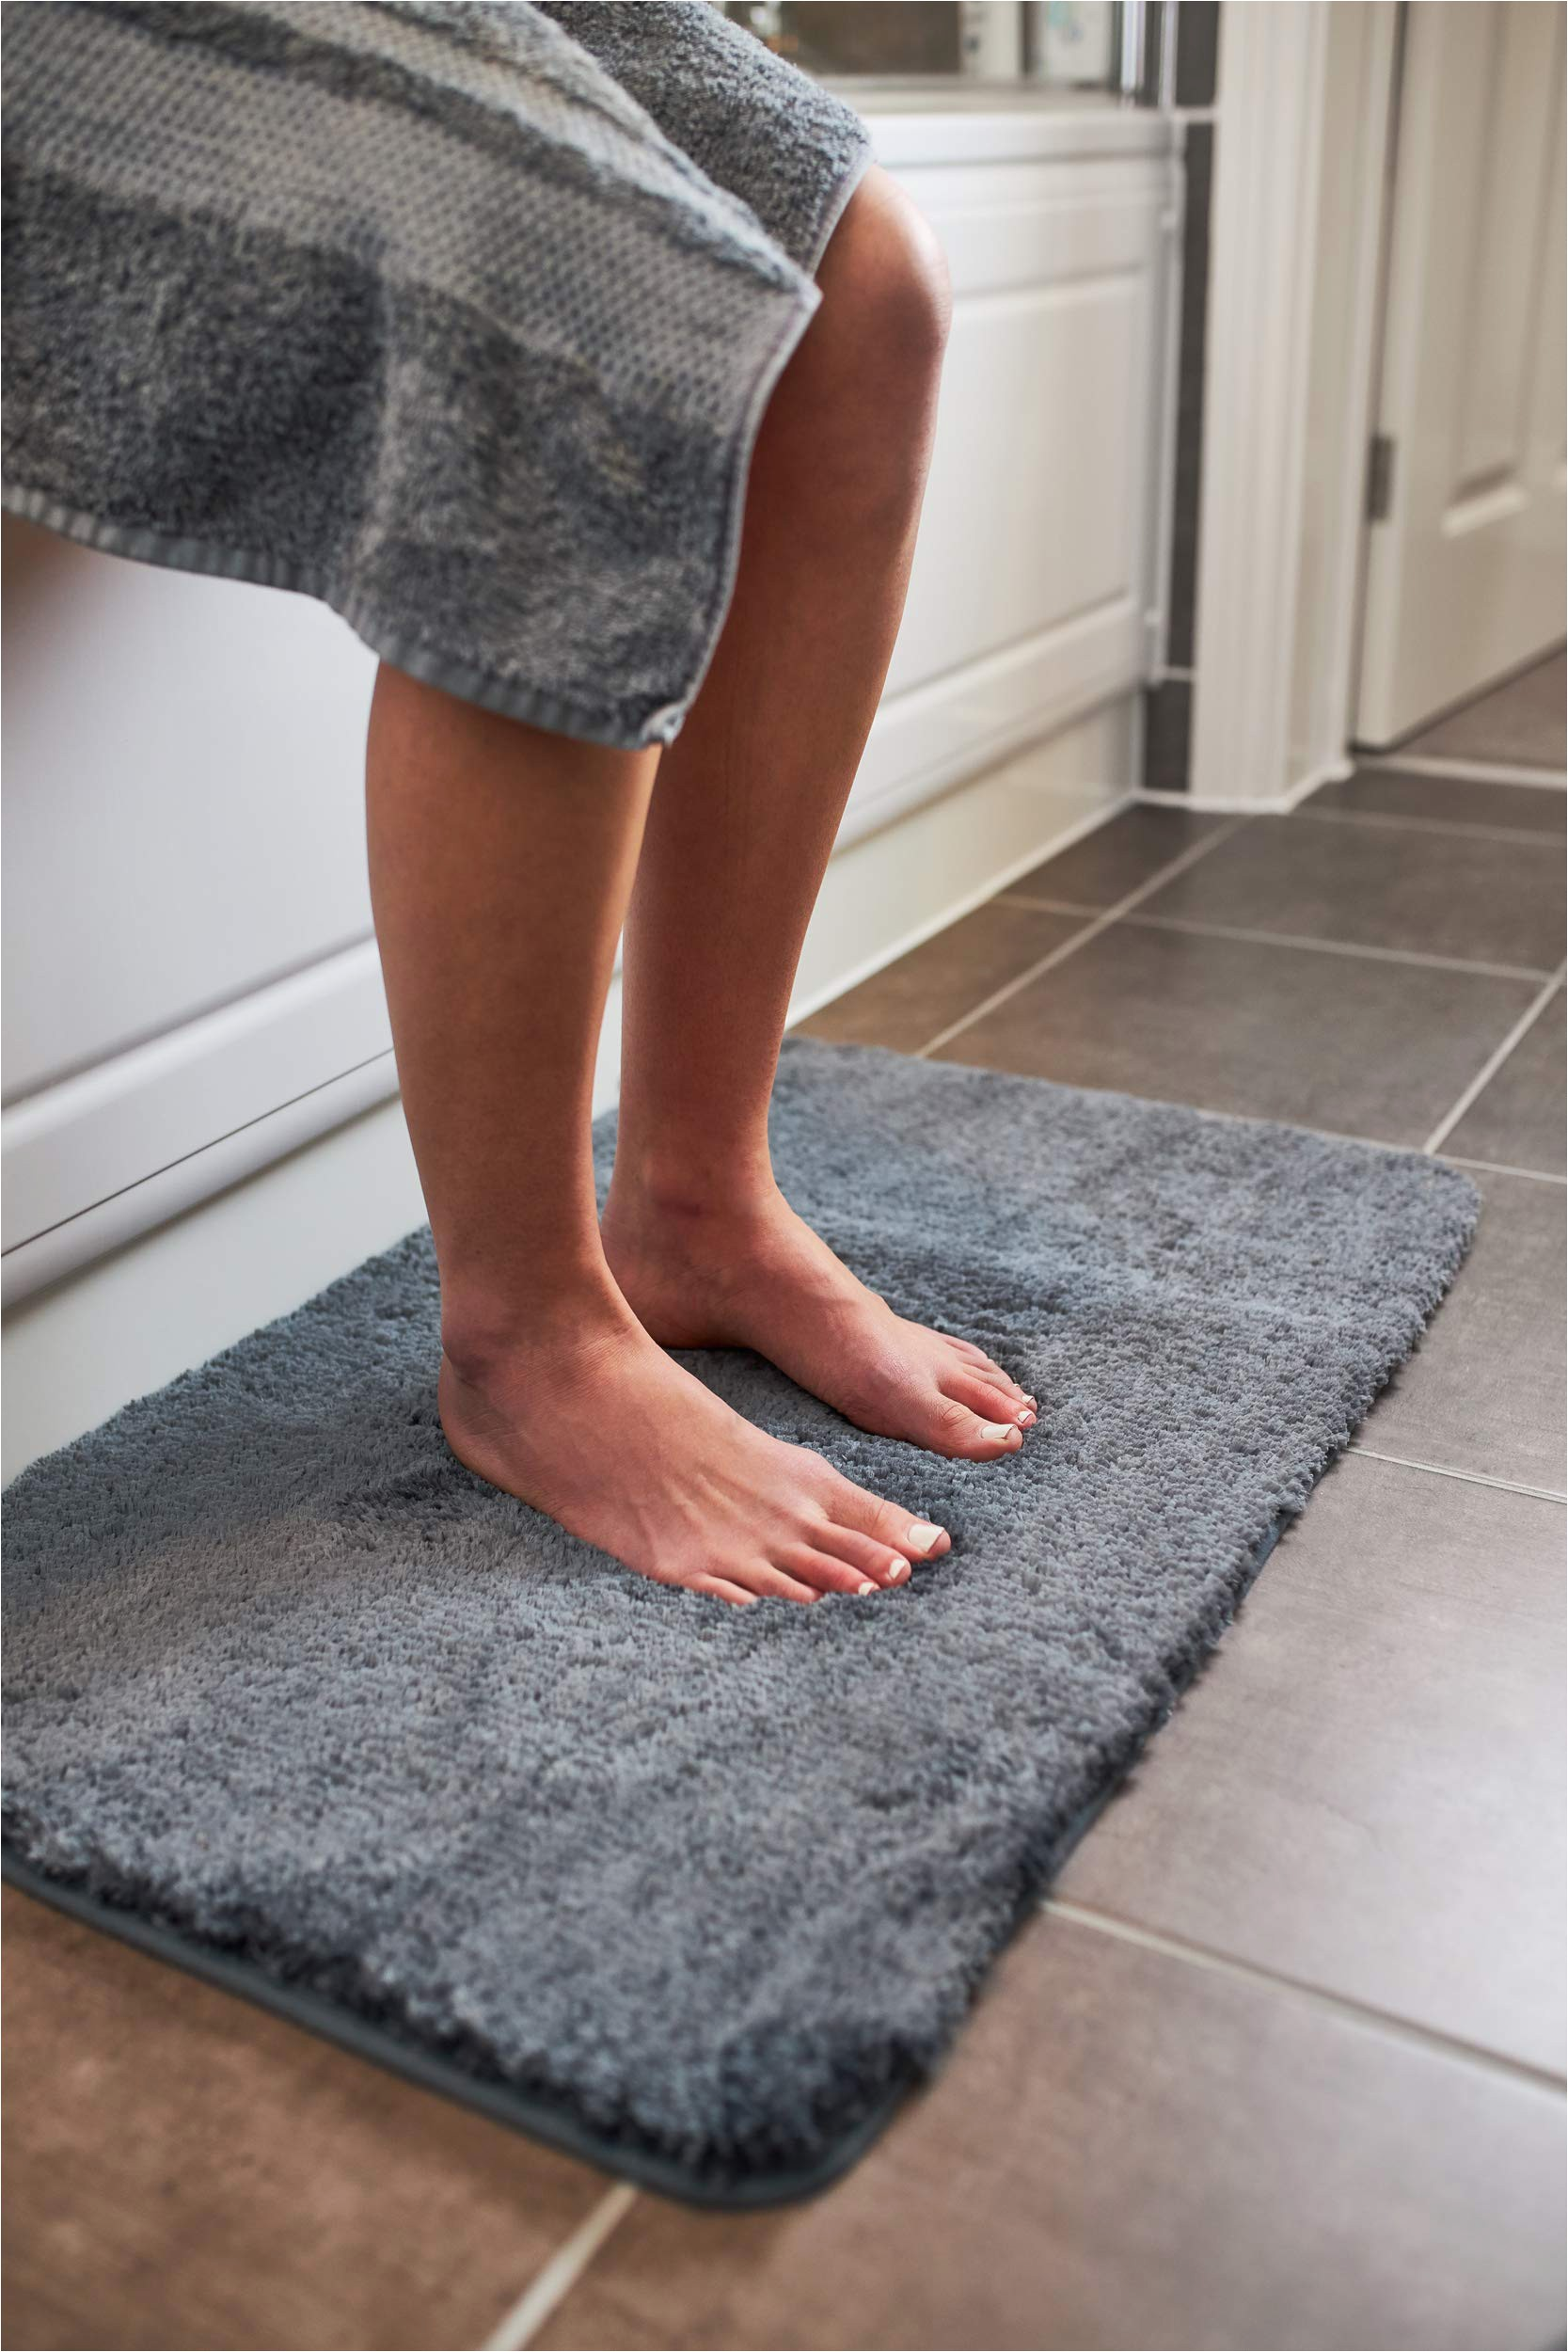 Oversized Bath Rugs Mat Luxury Grey Bath Mat Microfiber Non Slip Bath Rug with Super soft Absorbent Dry Fast Design for Bath and Shower